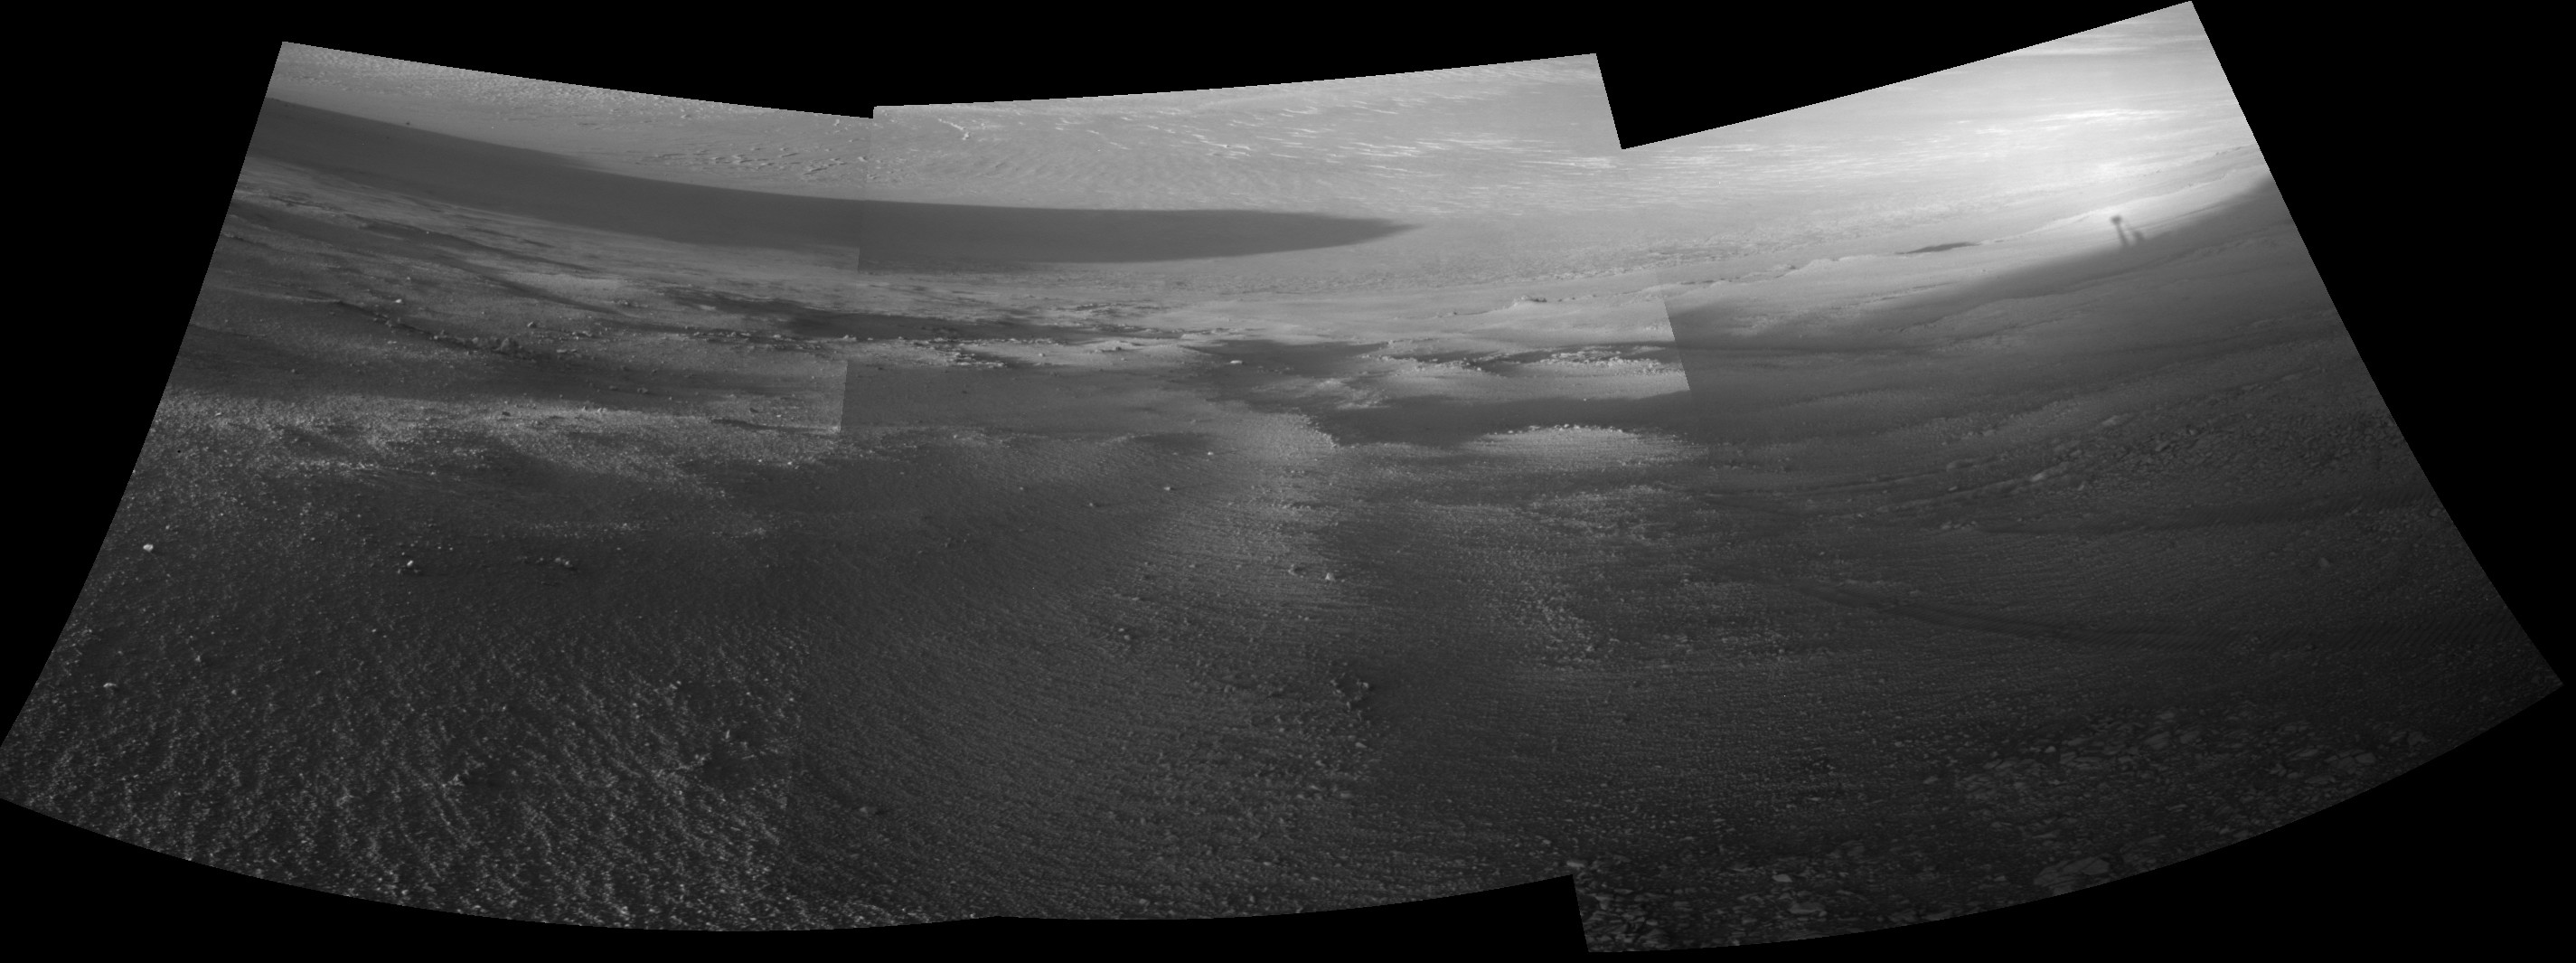 Opportunity's View Downhill Catches Martian Shadows: his mosaic scene combining five images from the navigation camera (Navcam) on NASA's Mars Exploration Rover Opportunity shows a view from inside the upper end of